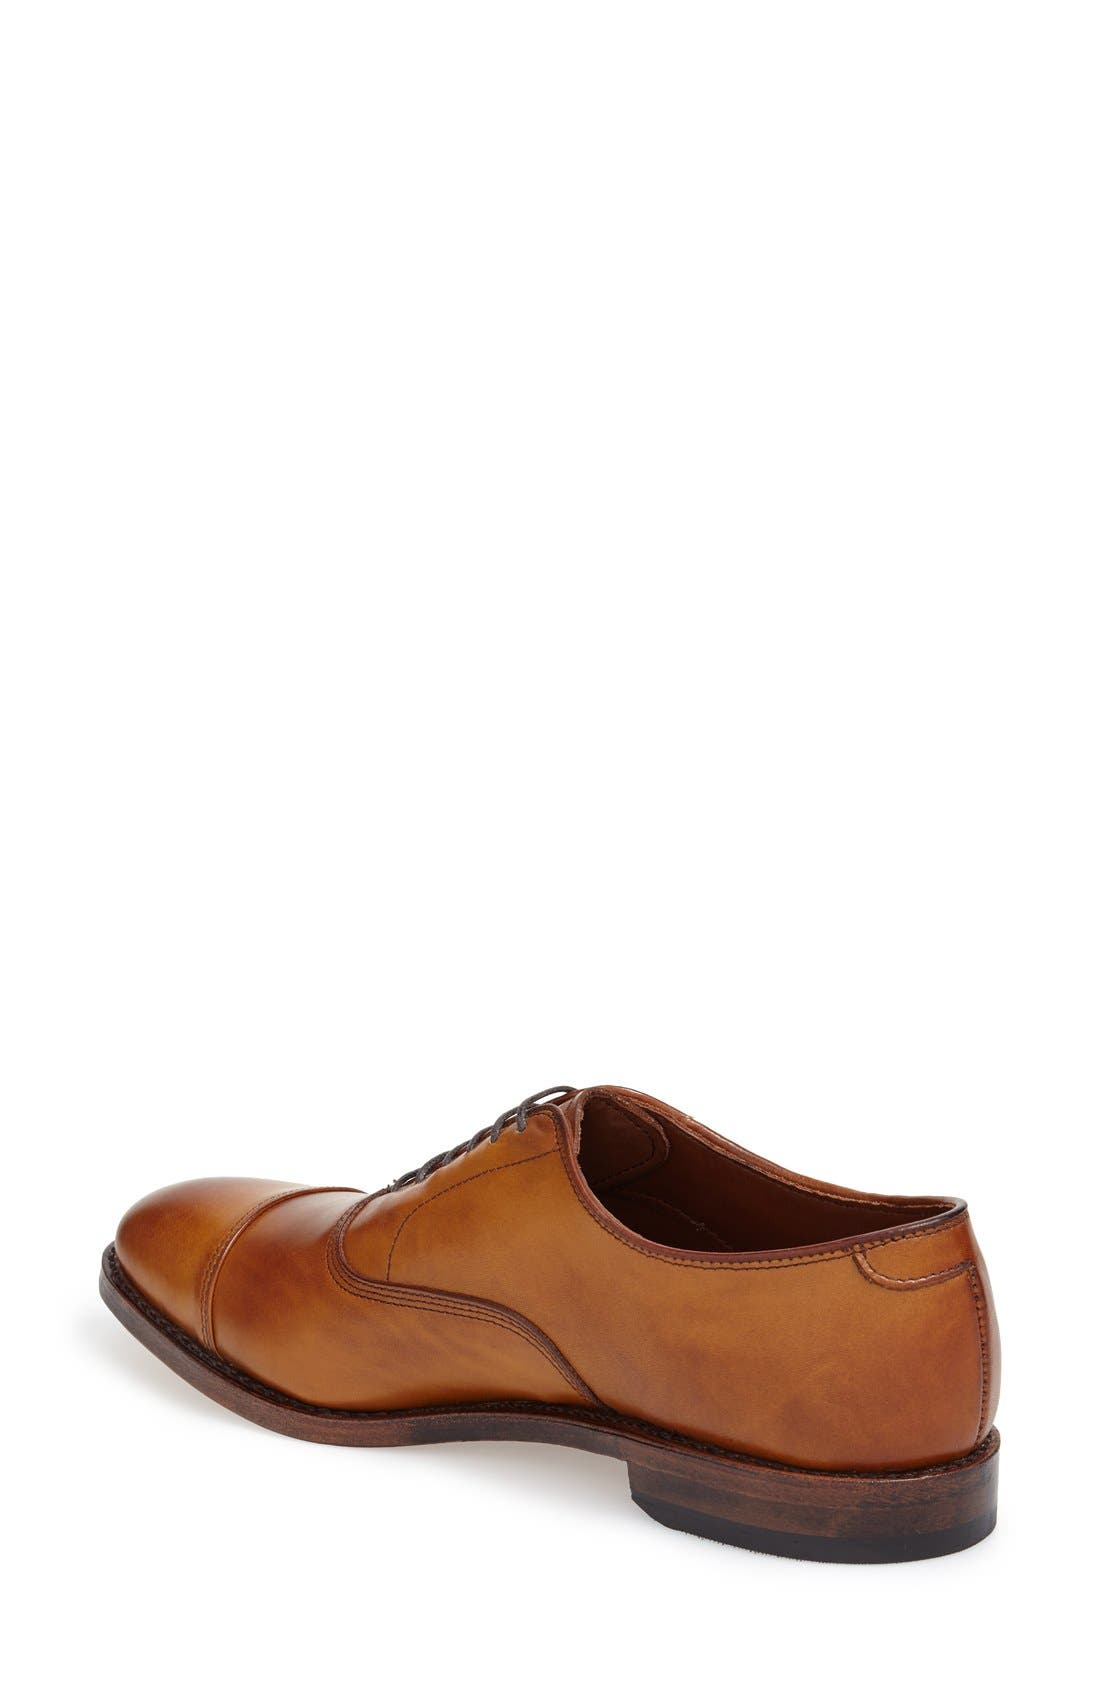 Alternate Image 2  - Allen Edmonds 'Park Avenue' Cap Toe Oxford (Men)